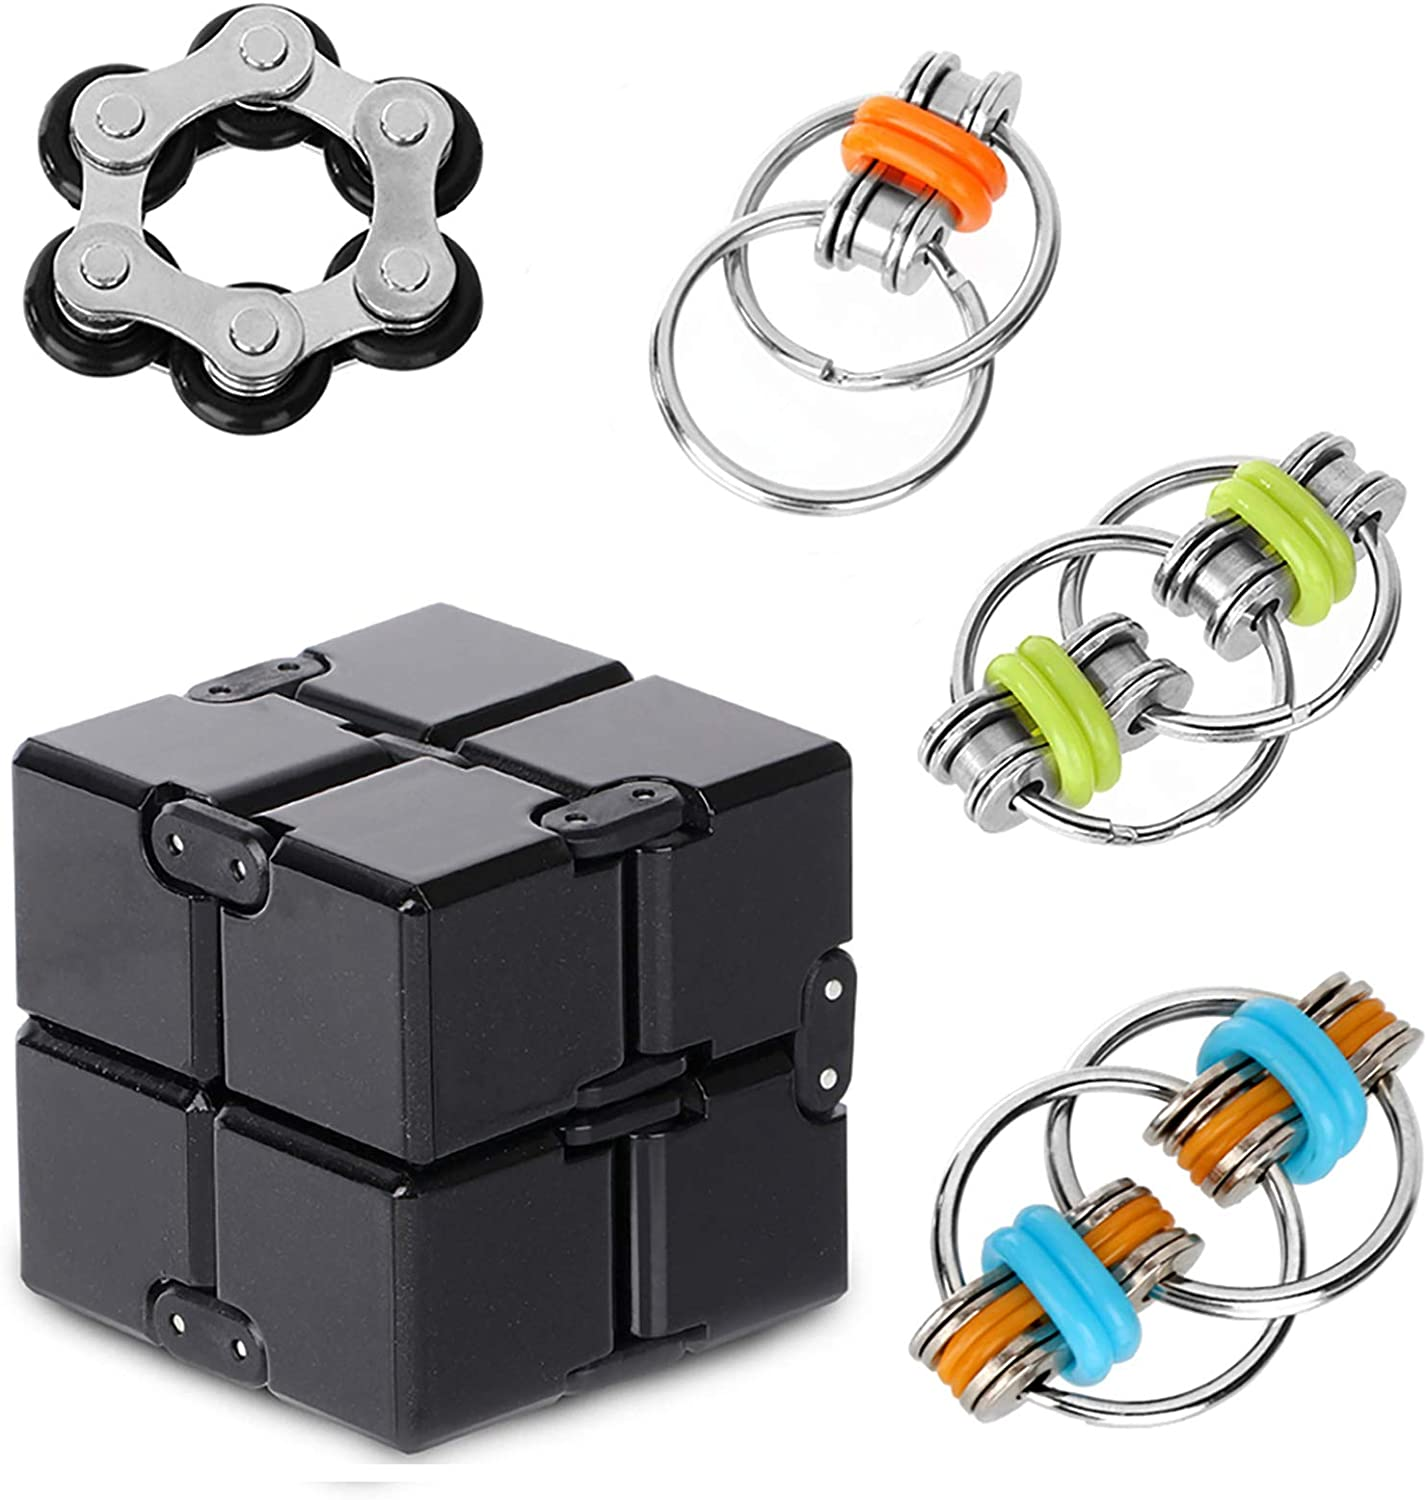 Anti-Anxiety Toys Max 44% OFF Fidget Finger Cool Gadget overseas In Mini Contain